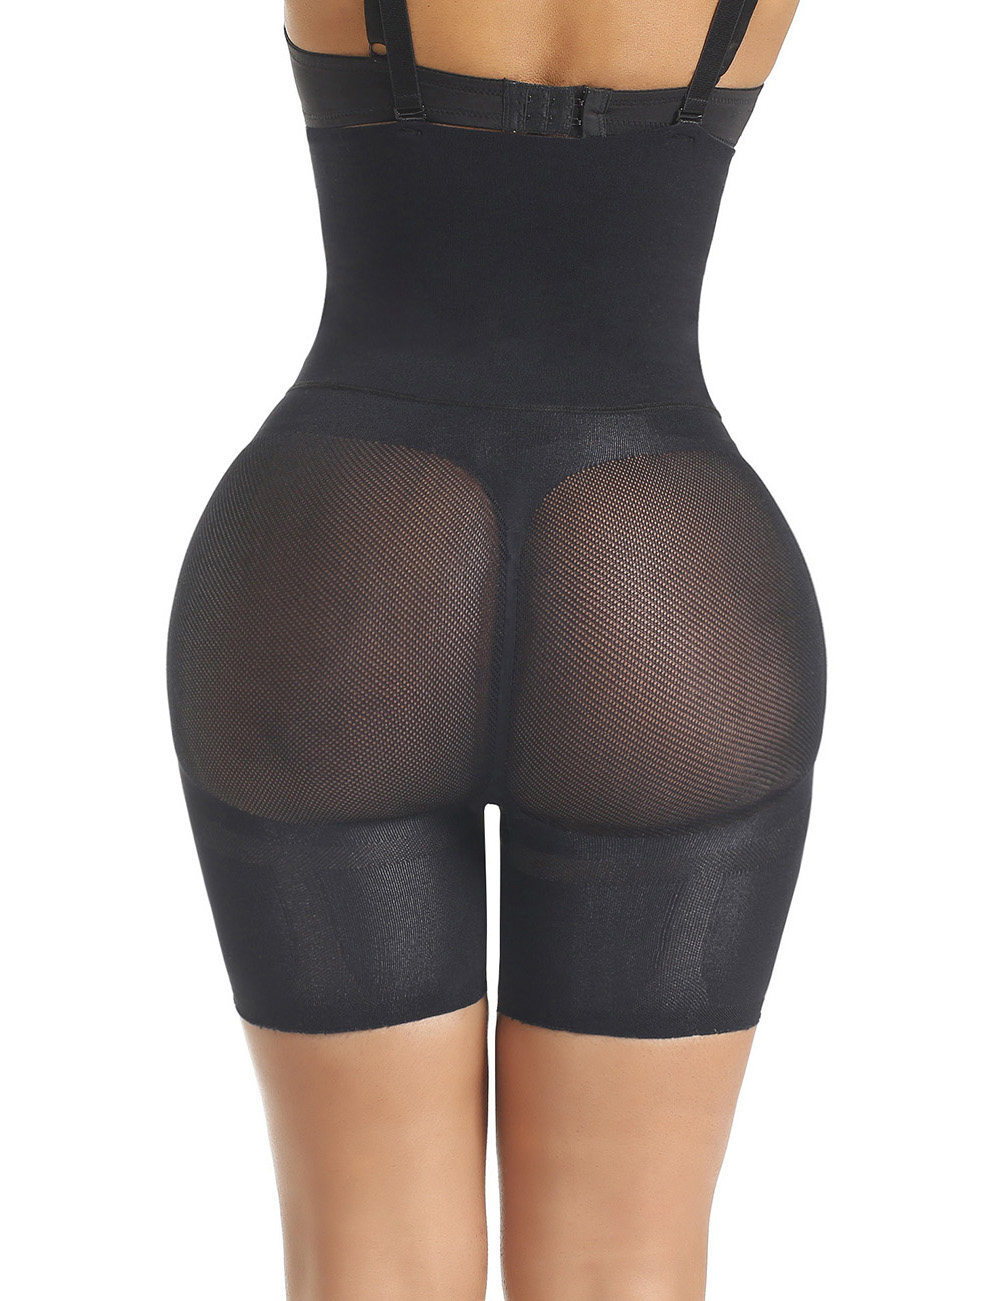 //cdn.affectcloud.com/hexinfashion/upload/imgs/Shaper/Body_Shaper/B195082-BK1/B195082-BK1-201911055dc114e66efbb.jpg